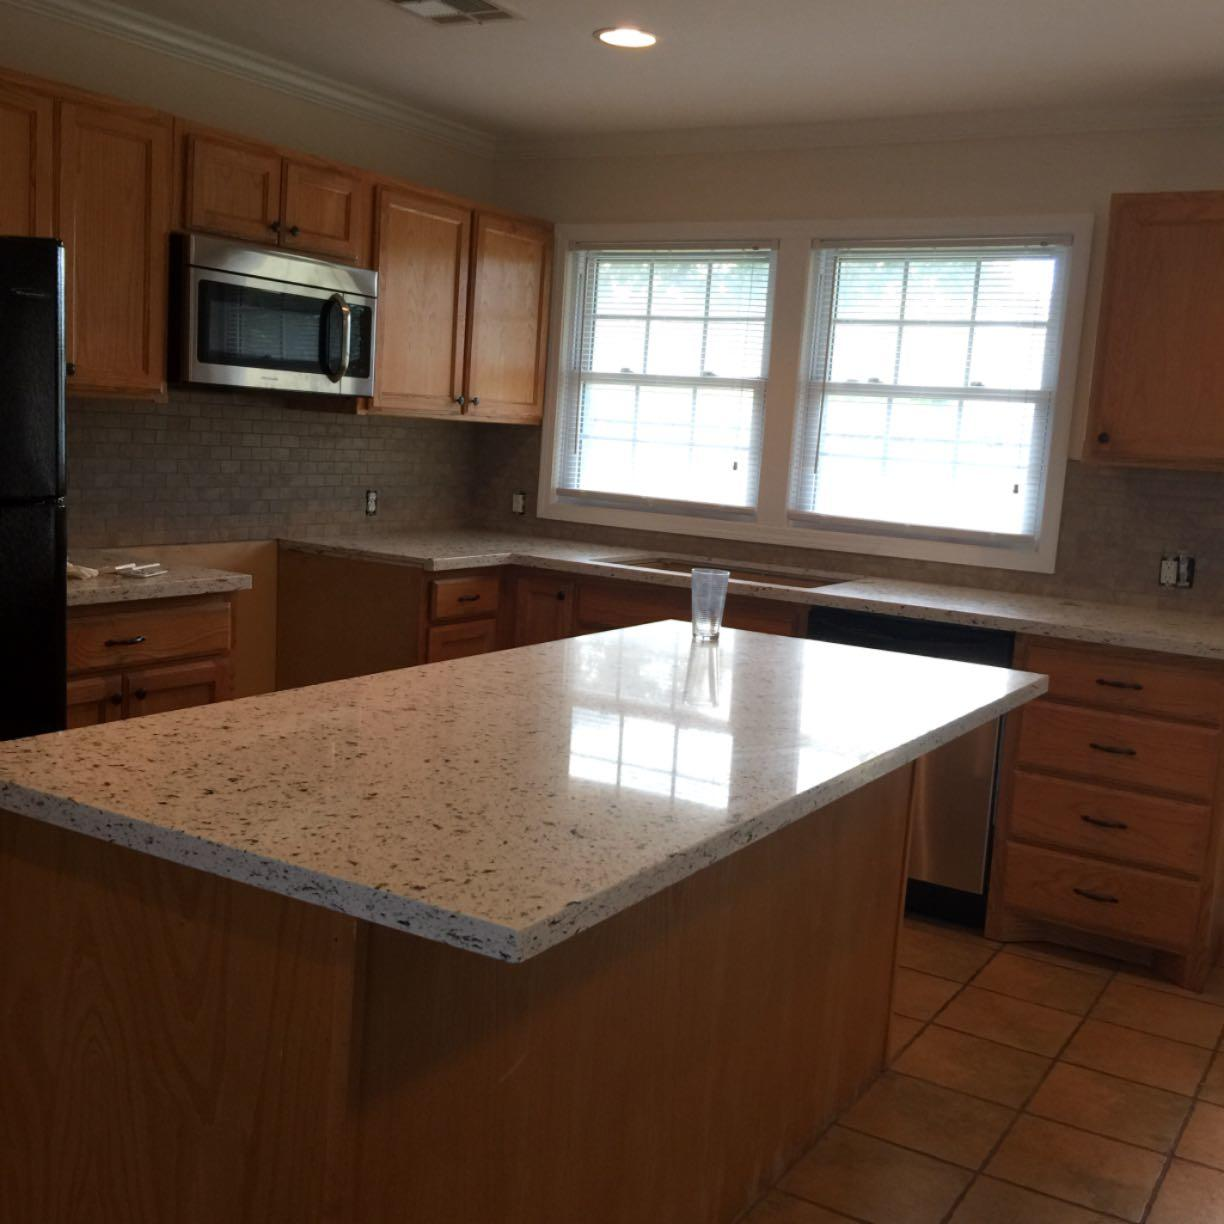 Nancy's Cabinets And Granite, Galveston Texas (tx. White Kitchen Cabinets Black Granite. Black Kitchen Cabinets For Sale. Upscale Kitchen Cabinets. Linen Kitchen Cabinets. Grey Green Kitchen Cabinets. Commercial Kitchen Cabinets. Cabinet Ideas For Small Kitchens. Unpainted Kitchen Cabinets